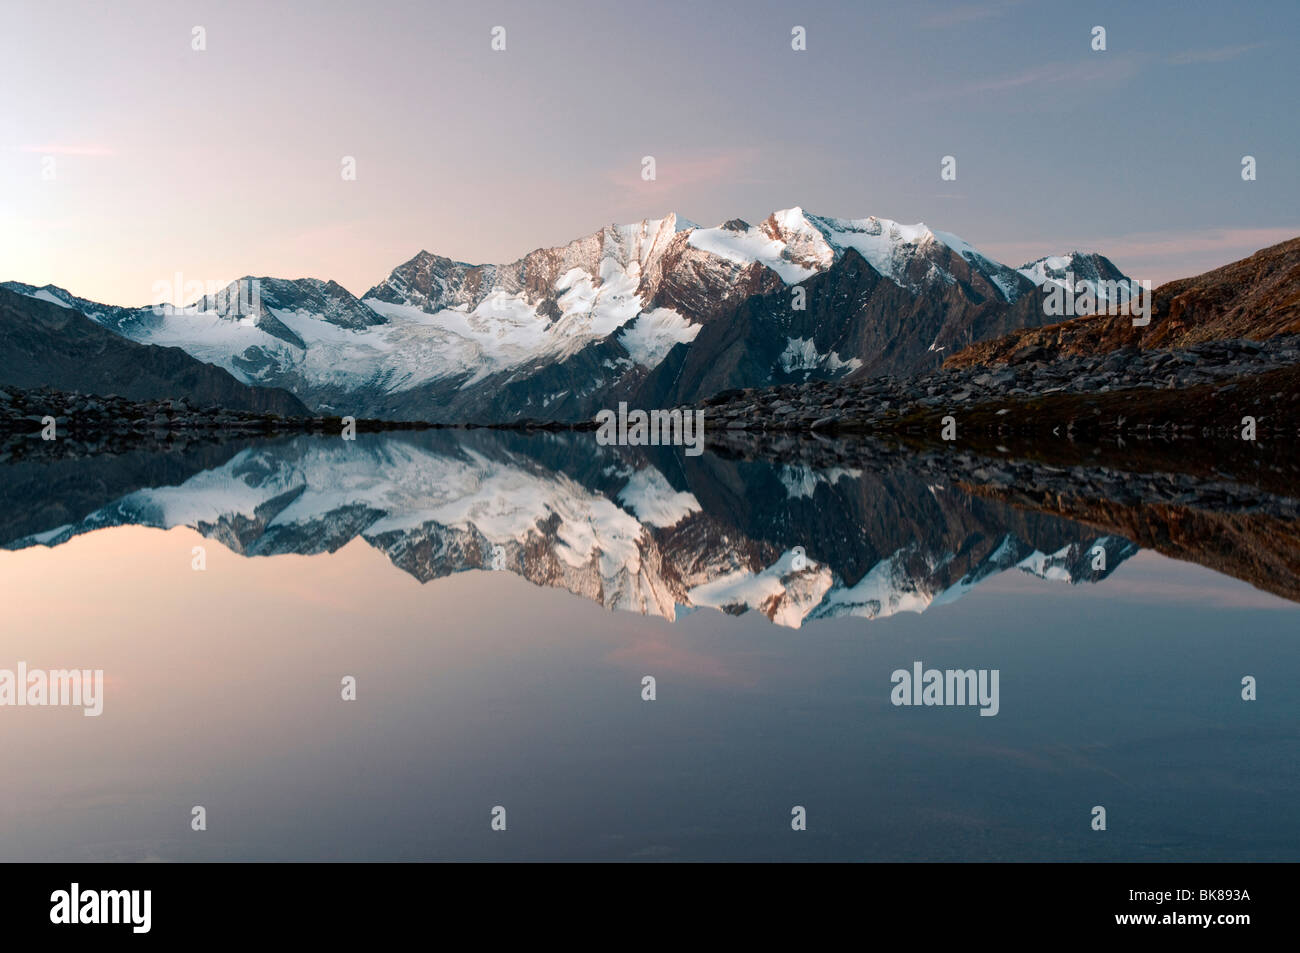 Hochfeiler Mountain reflected in Friesenbergrsee lake in Hochgebirgs Nature Park in the Zillertal Alps, Austria, Stock Photo